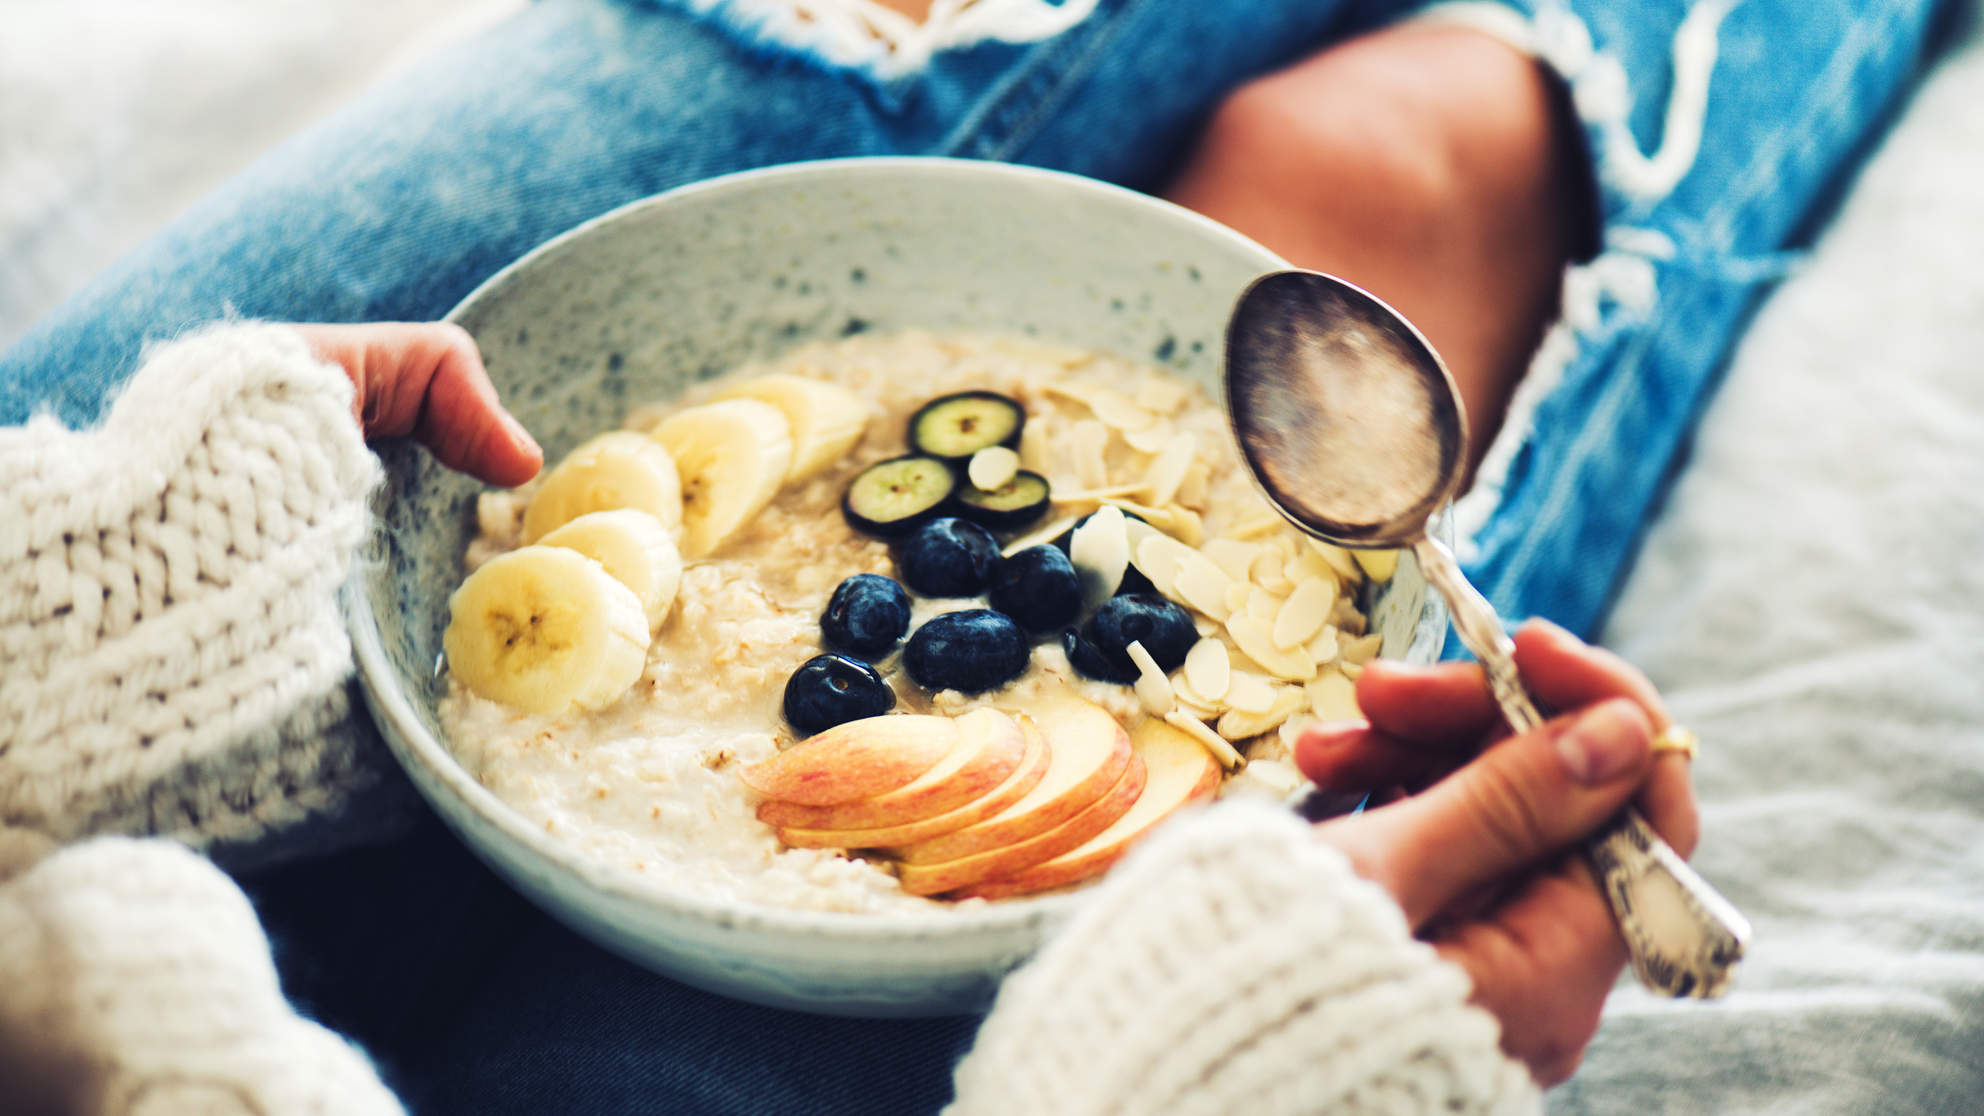 best healthy carbs oatmeal oats overnight food diet healthy woman digestion morning breakfast quick women full fiber cholesterol toppings fruit balanced